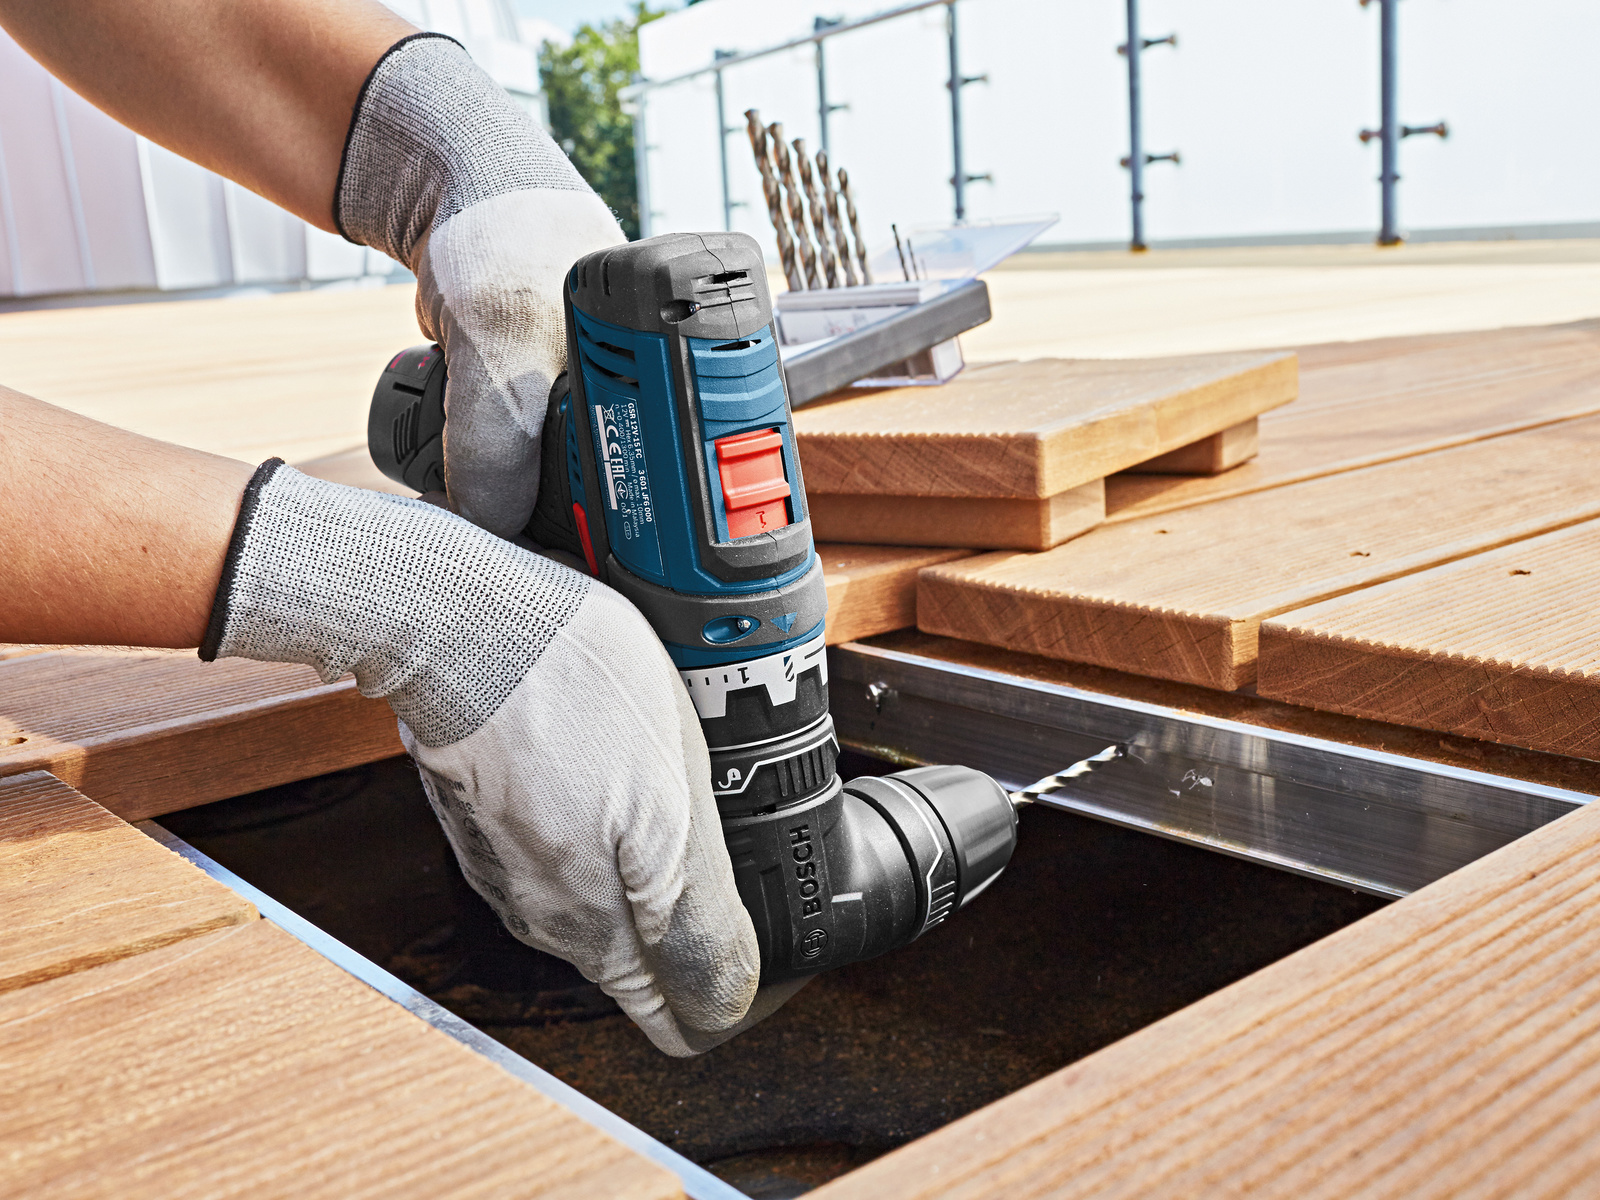 5-in-1 cordless drill/driver system for professionals: The GFA 12-W Professional angle adapter from Bosch